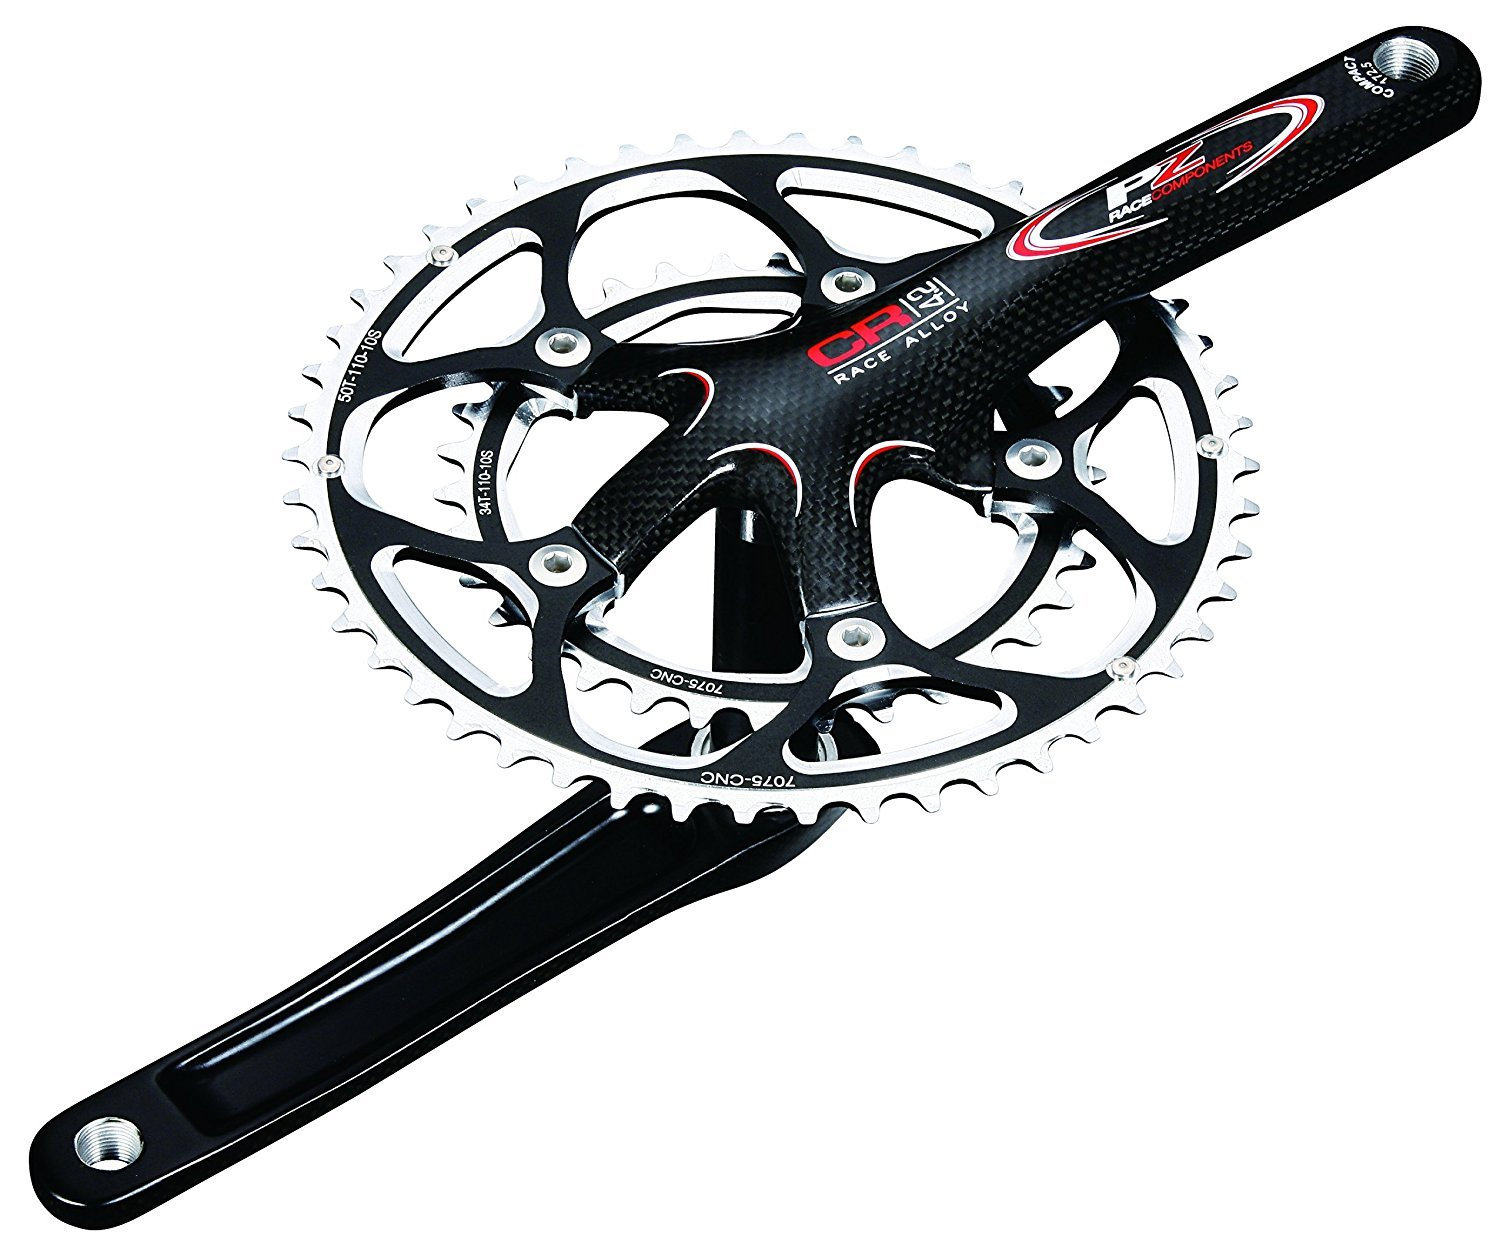 PZ Racing CR4.2K 50/36T Bike Crankset 110x172.5mm Shiny Black [並行輸入品] B075K4DVFW